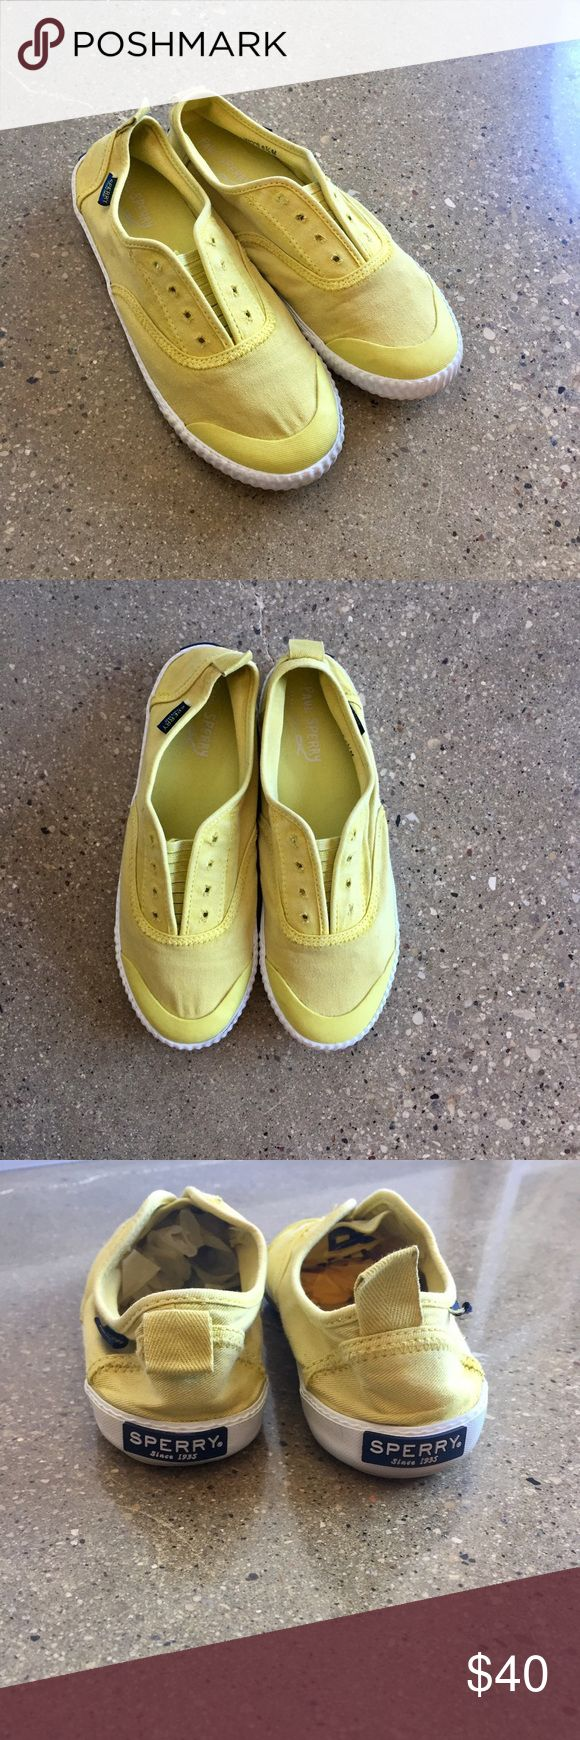 Sperry • Yellow Slip Ons New, only worn in my house. Elastic slip on style. Coordinating Racerback tank top (same color) also listed for sale in my closet! 🔺No PayPal, no trades, offers welcome via offer button only! Bundle to save. (Bin#6) Sperry Shoes Sneakers